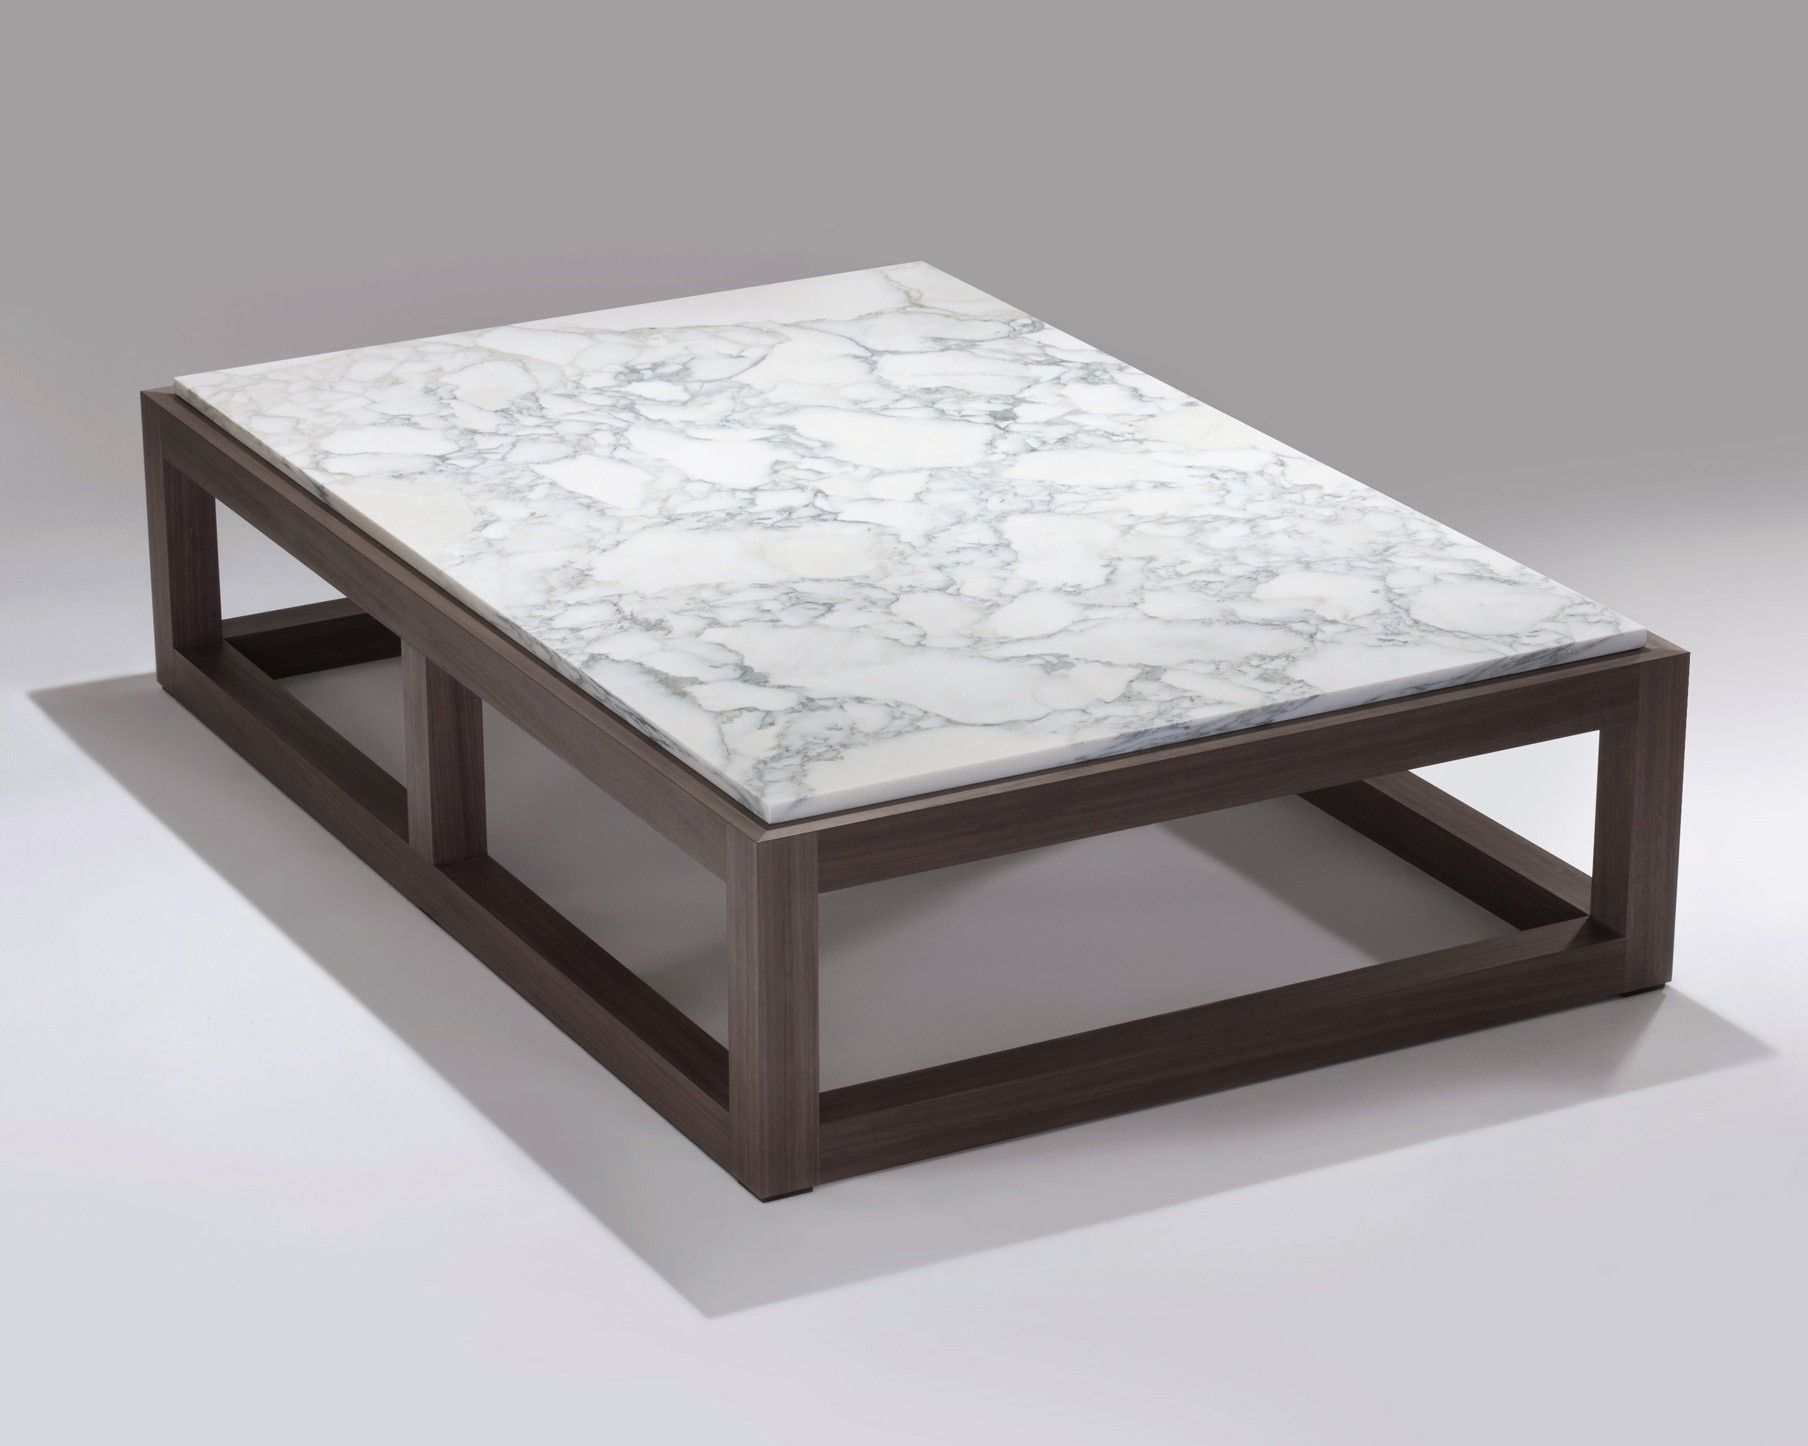 Fantastic Pin By Chottu On Places To Visit Grey Wood Coffee Table Ncnpc Chair Design For Home Ncnpcorg